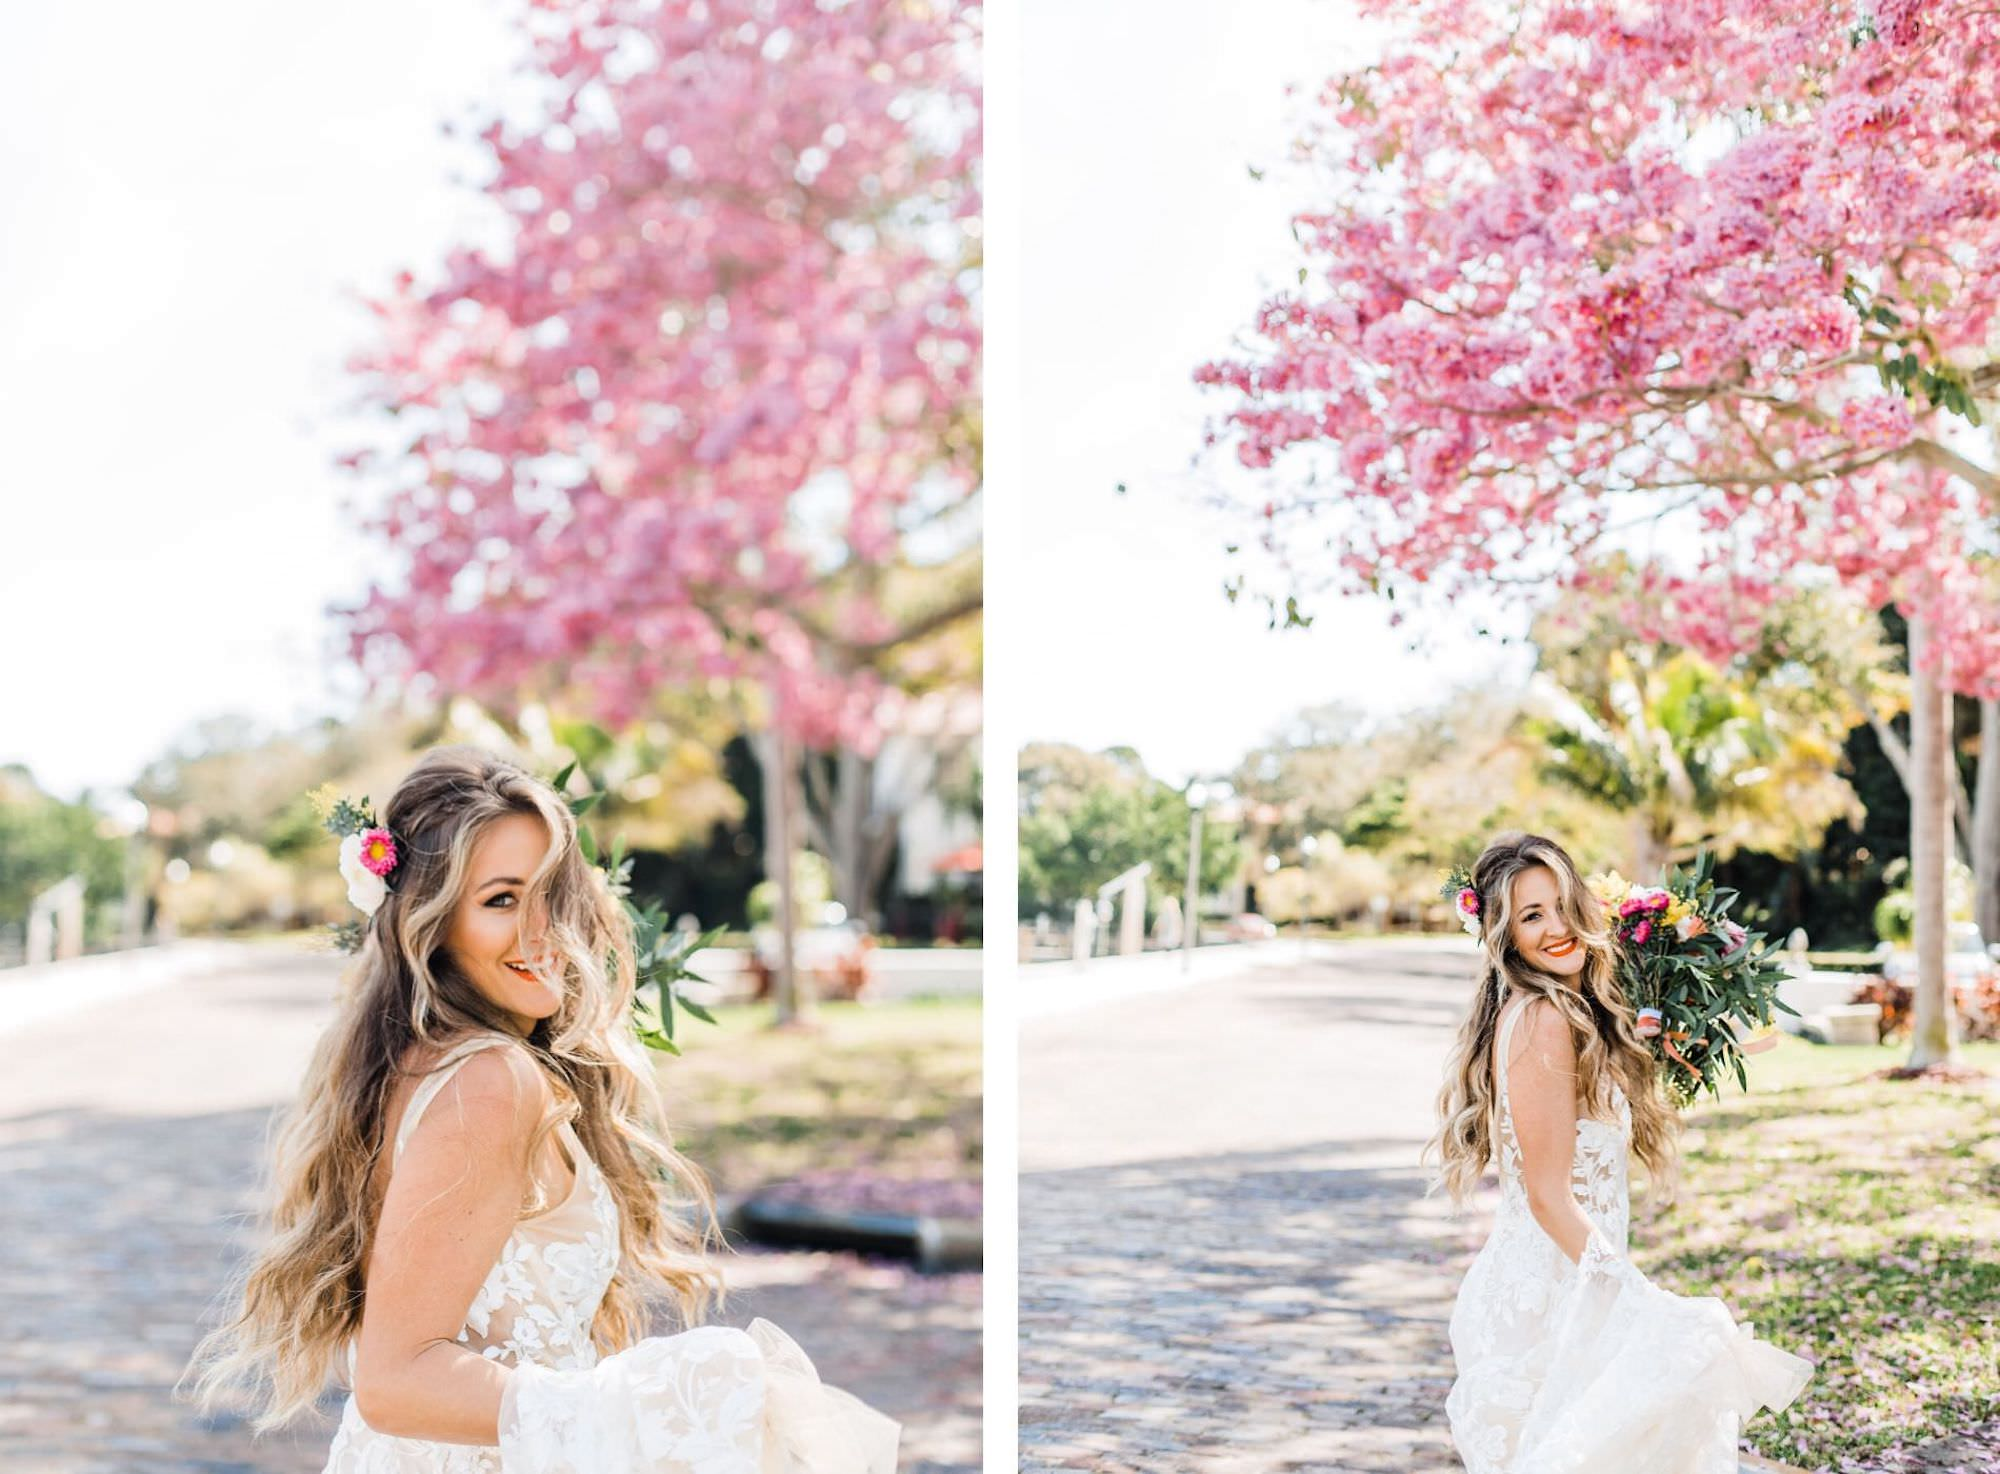 Boho Inspired Outdoor St. Pete Bridal Portrait with Natural Curls